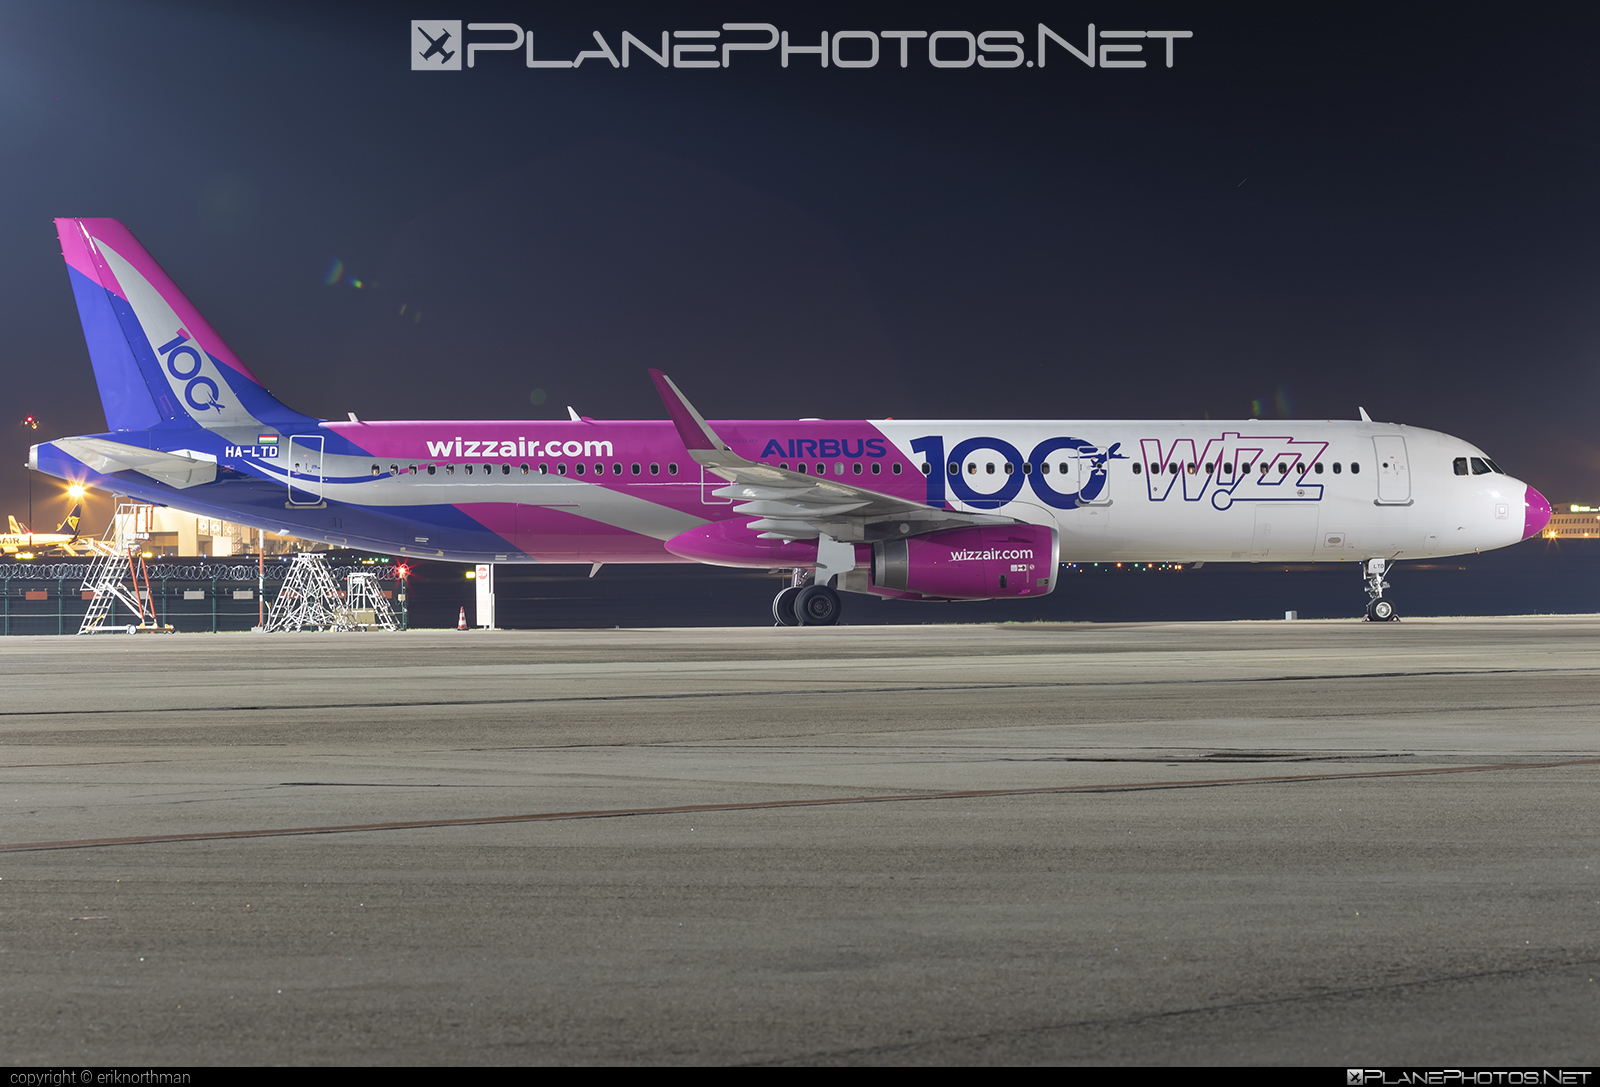 Airbus A321-231 - HA-LTD operated by Wizz Air #a320family #a321 #airbus #airbus321 #wizz #wizzair